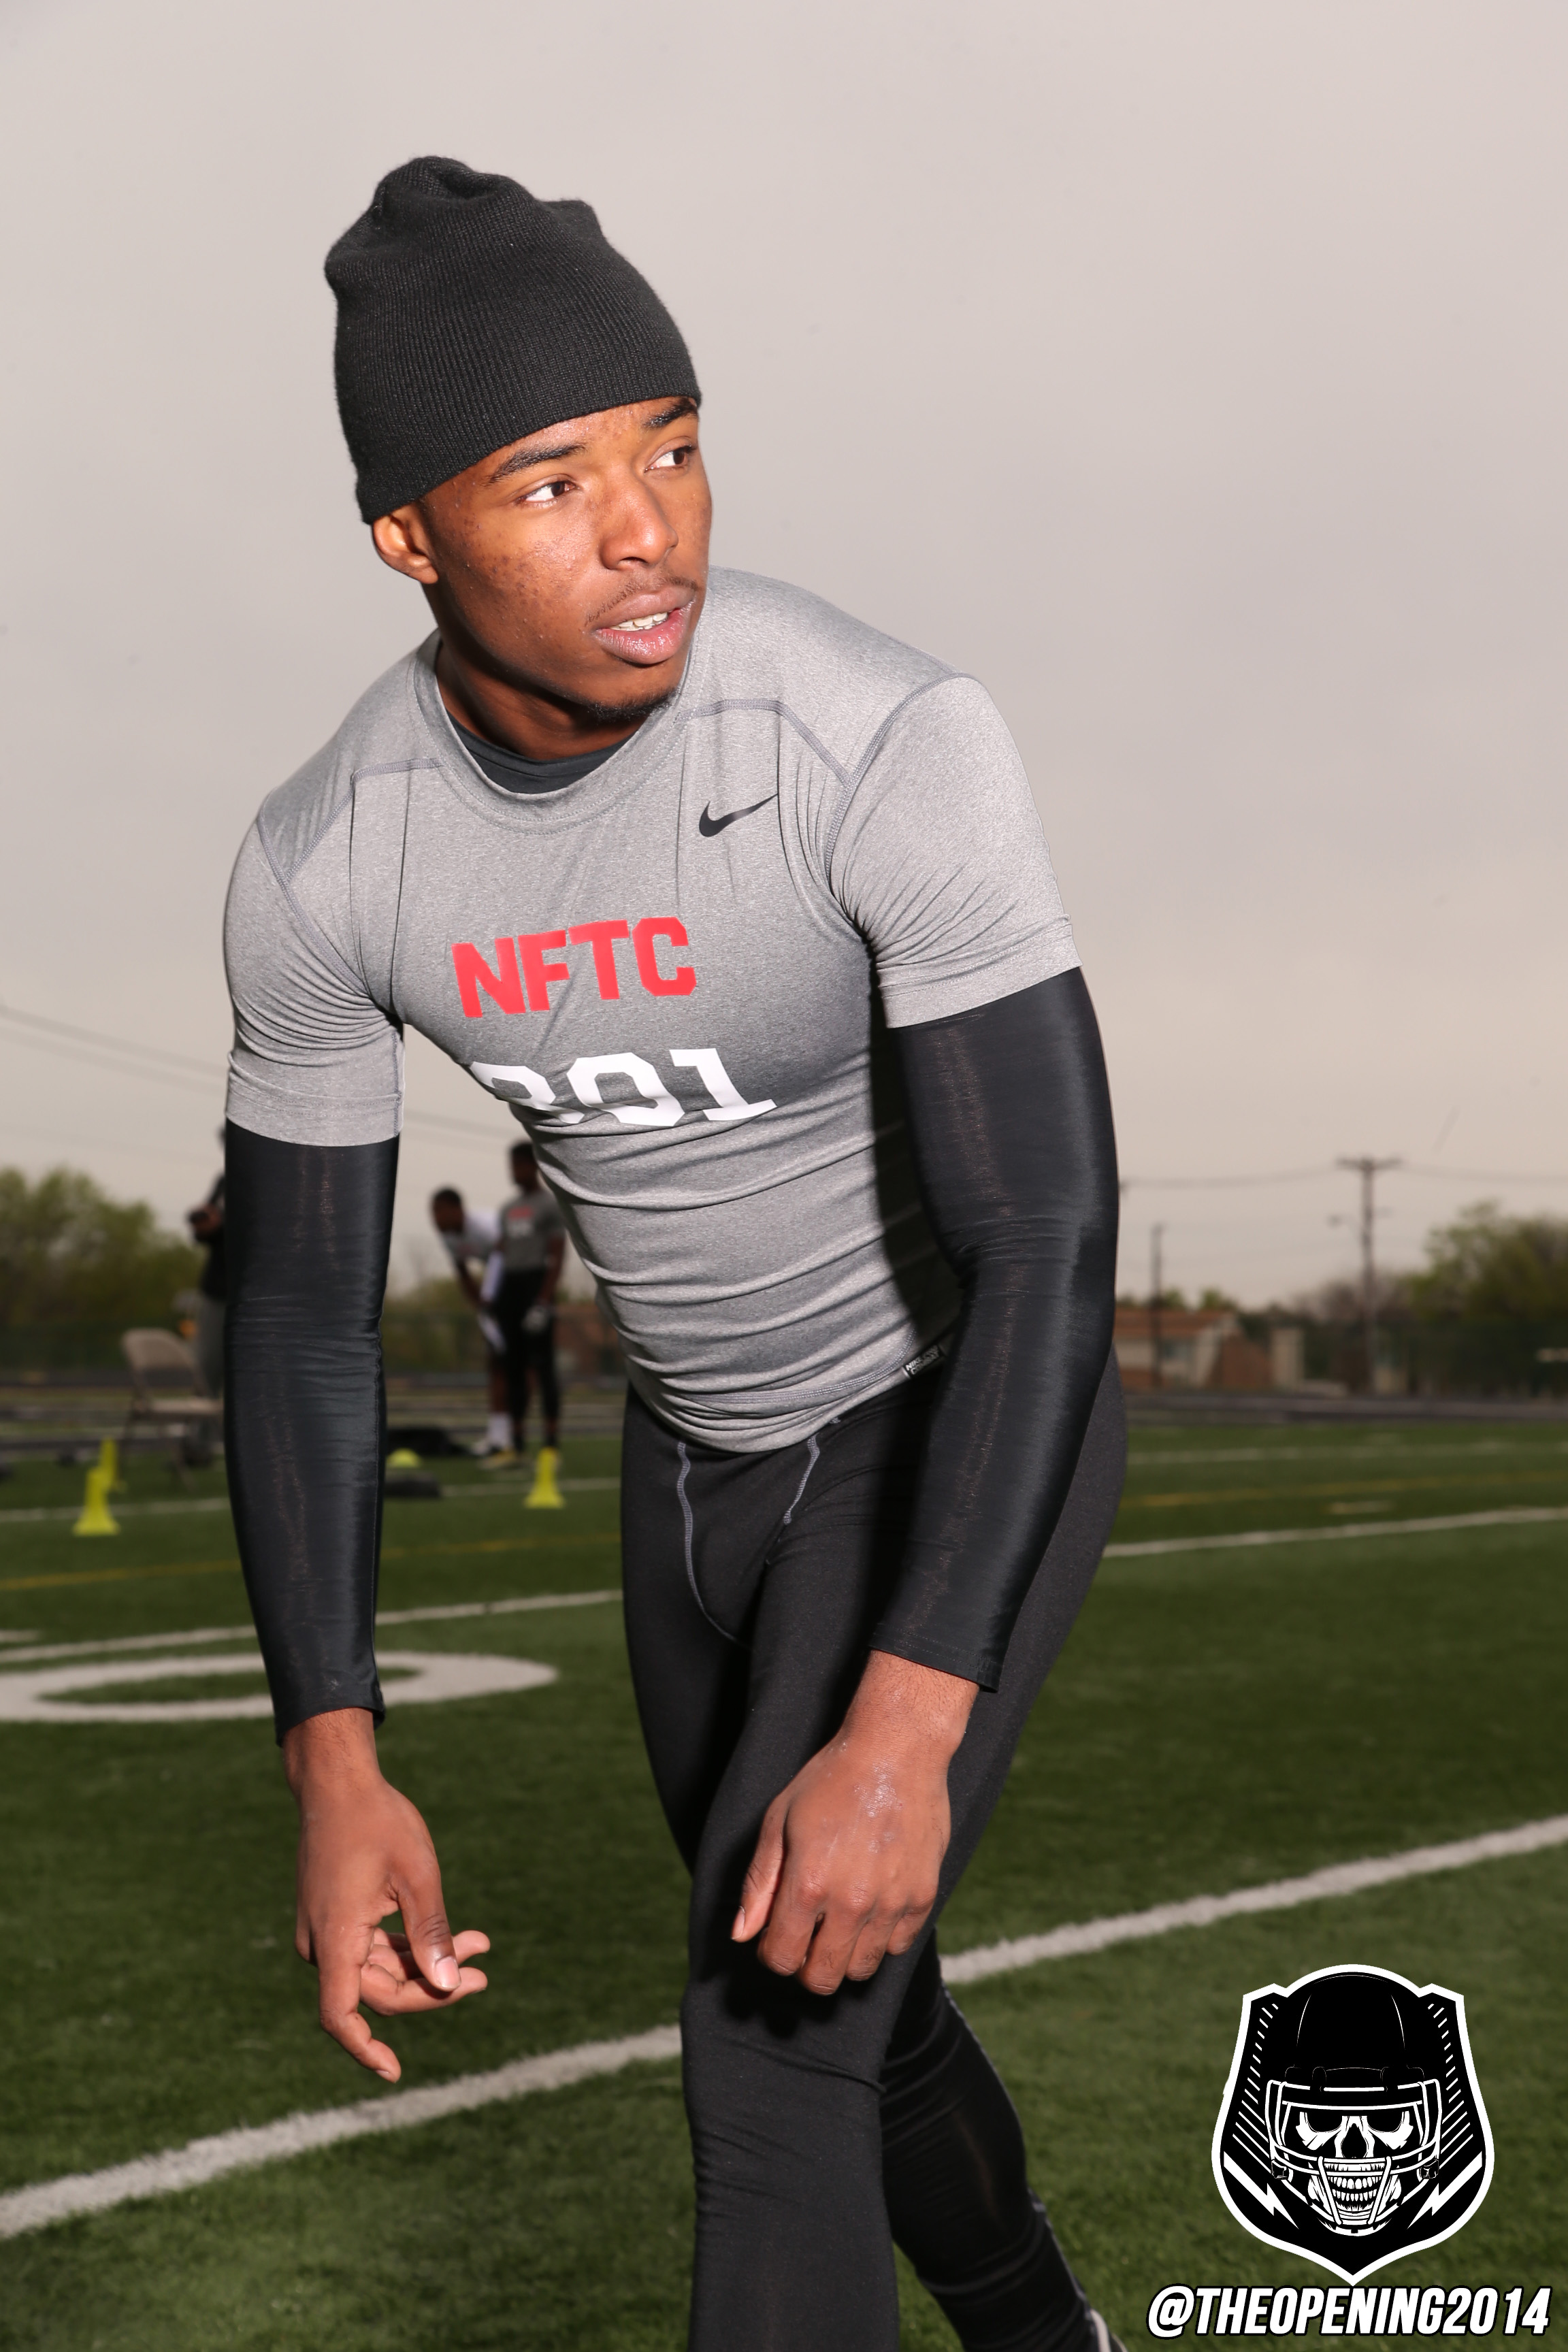 Ryan Newsome at the Dallas NFTC in 2014